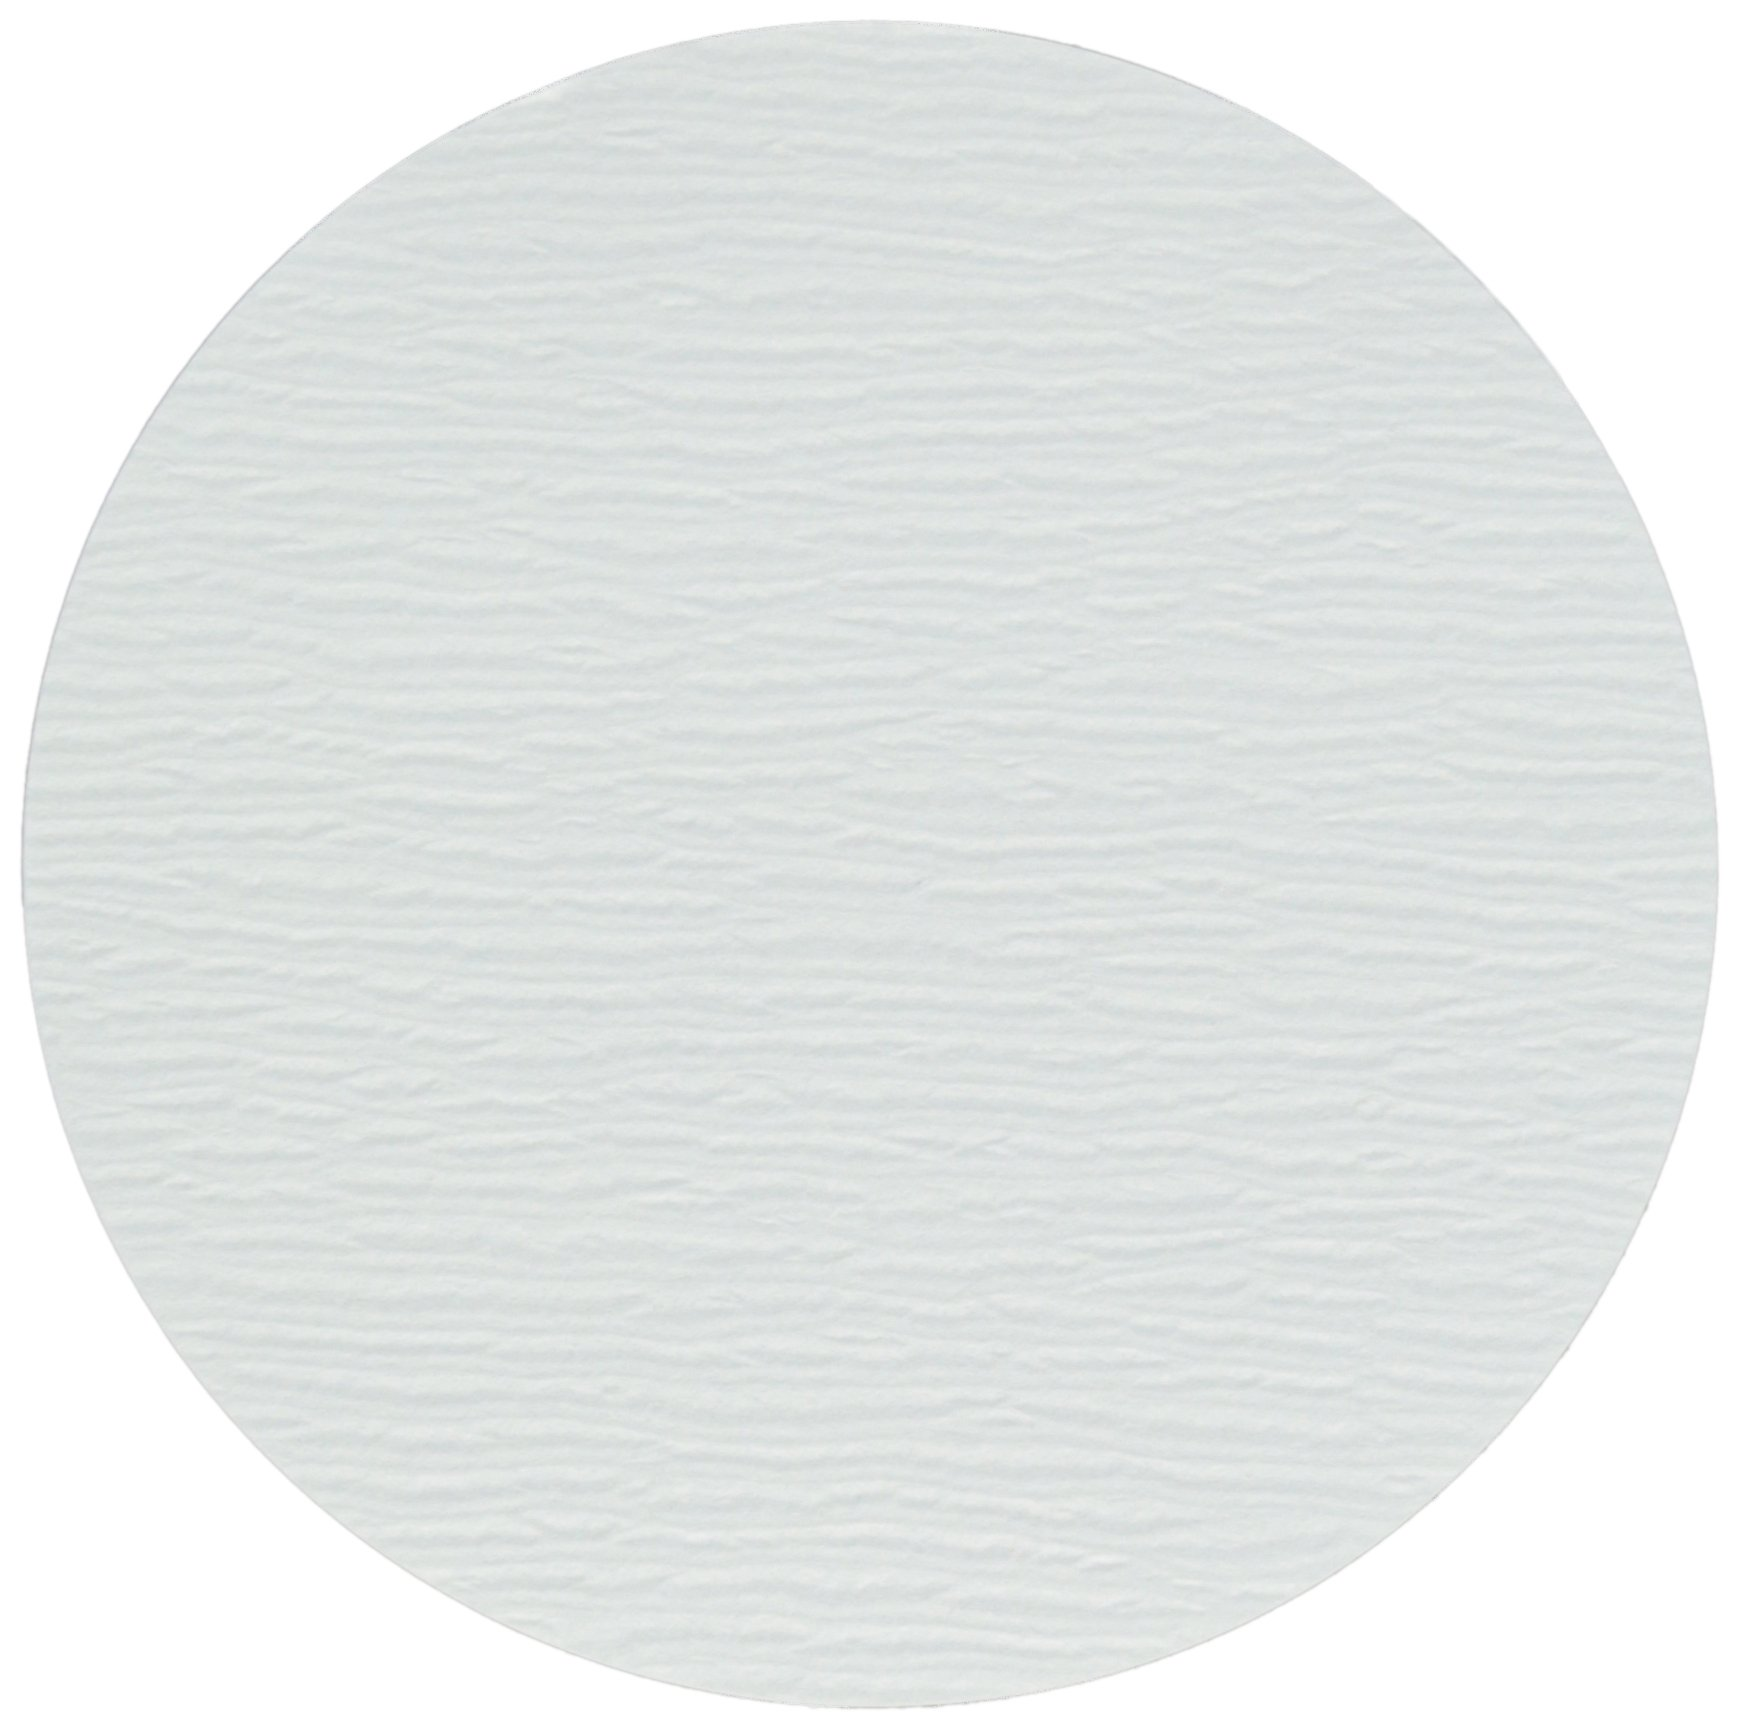 GE Whatman Reeve Angel 5230-125 Qualitative Filter Paper, Circle, Crepe Surface, Very Fast Speed, Grade 230, 12.5cm Diameter (Pack of 50)